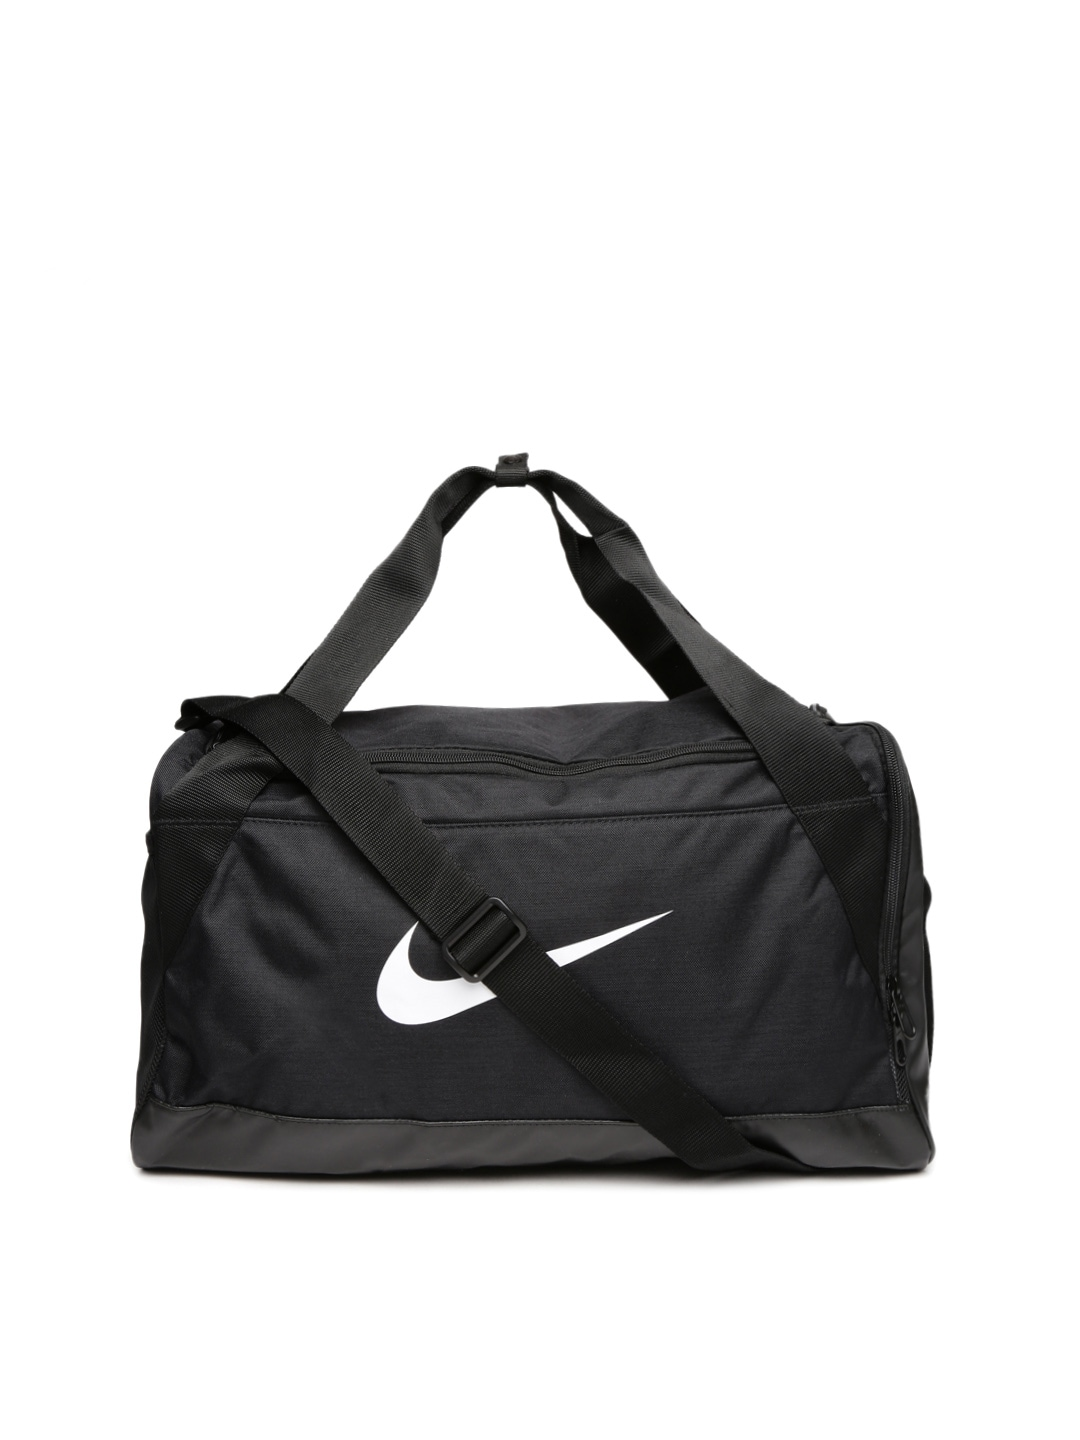 77ddd2a3d169 Gym Bags For Men - Buy Mens Gym Bag Online in India